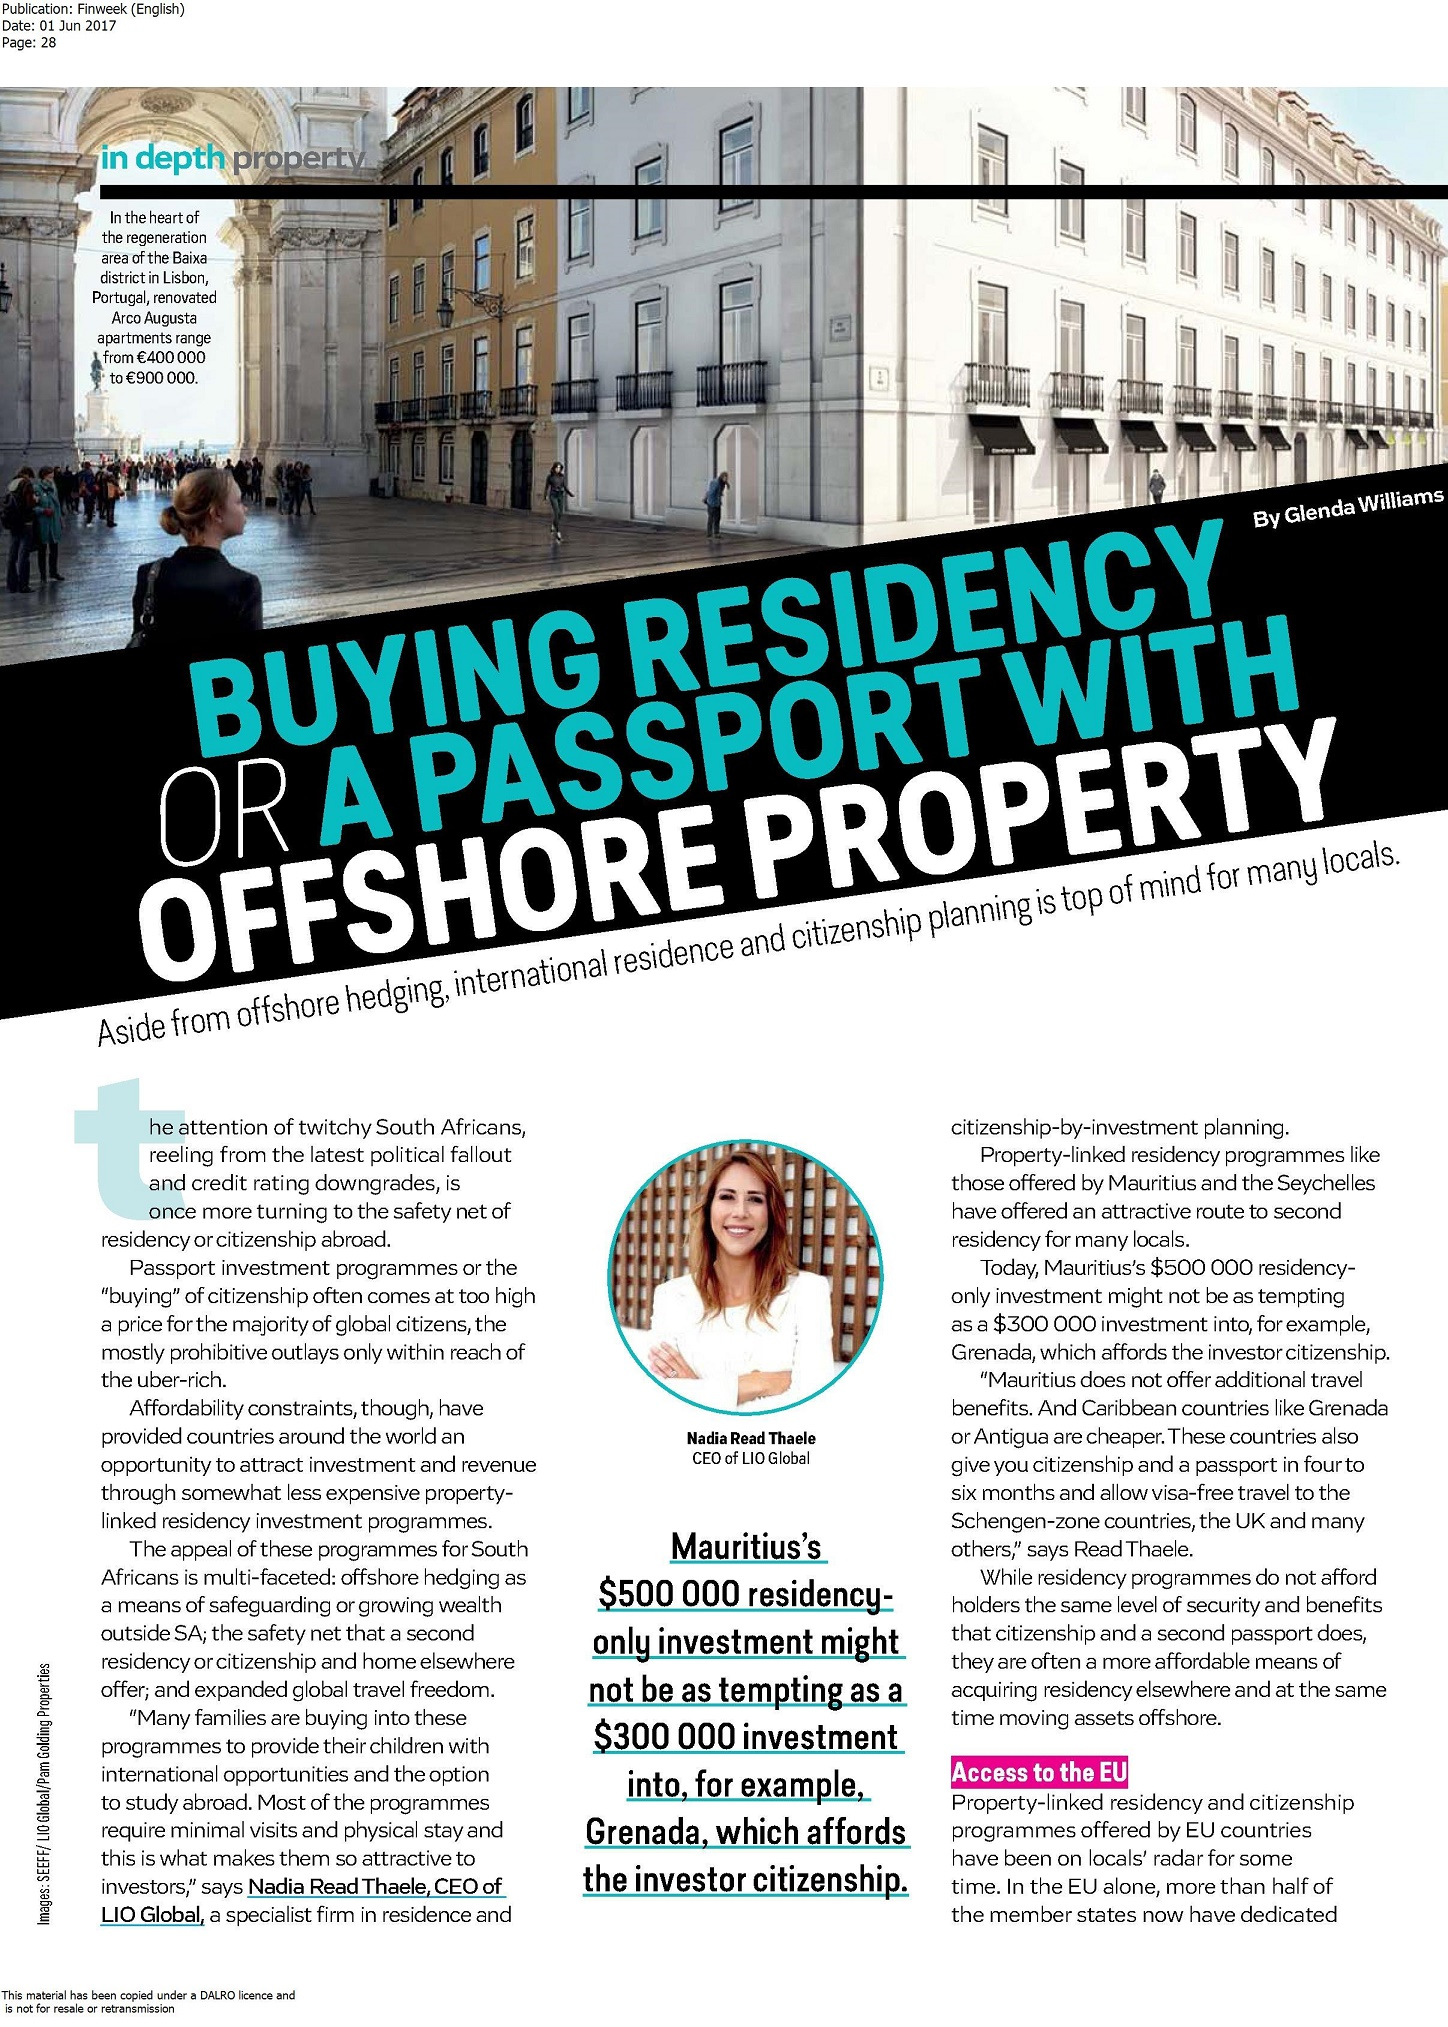 Finweek English LIO Global - pg 1 of 3 - Offshore property and visas incl. Malta - May 2017 (1).jpg